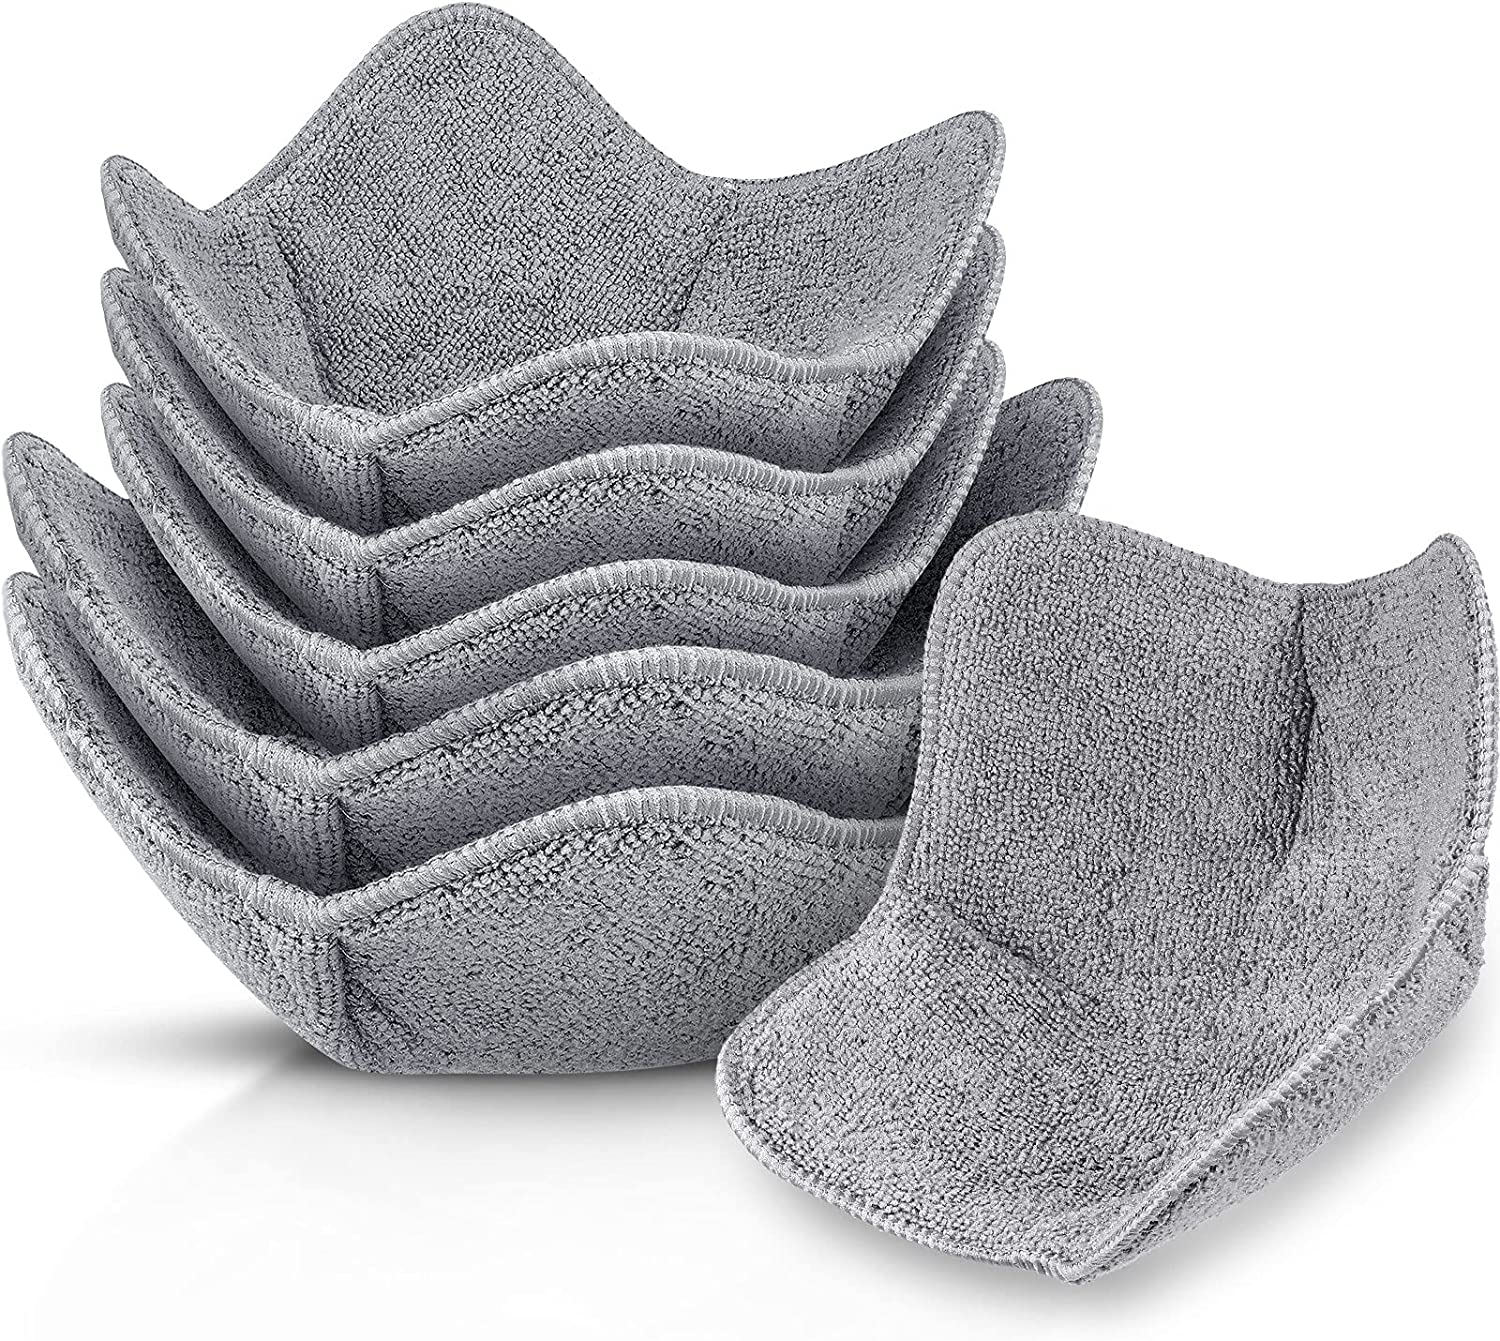 6 Pieces Bowl Huggers Microwave Safe Holder Multipurpose Hot Heat Resistant Plate Holder Polyester Potholder Protector to Keep Your Hands Cool and Your Food Warm for Heat Soup, Food, Meals (Grey)